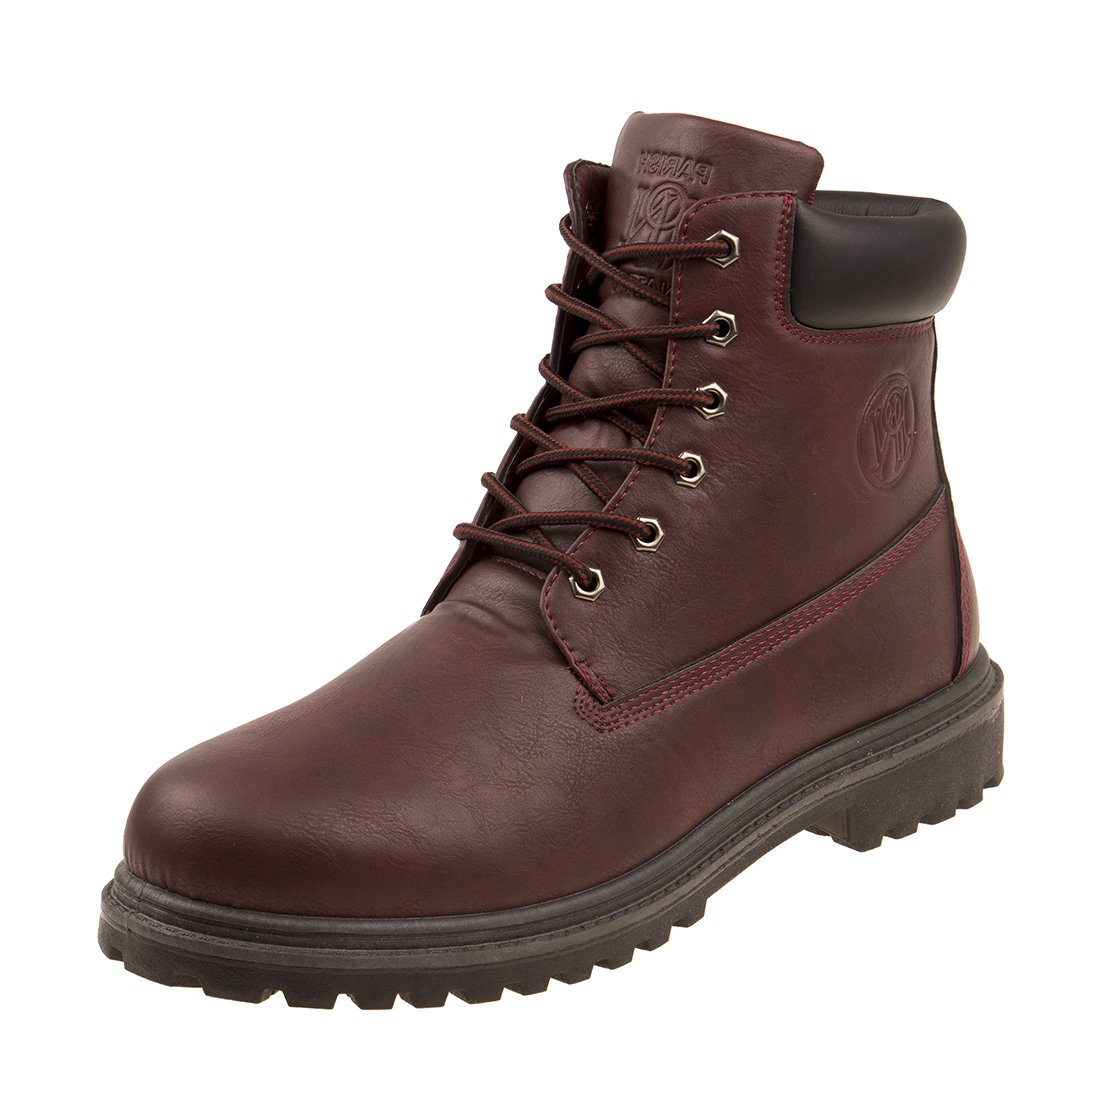 PARISH NATION Mens Soft Toe Lace-up Work Boot, Burgundy, Size 10.5 D(M) US'